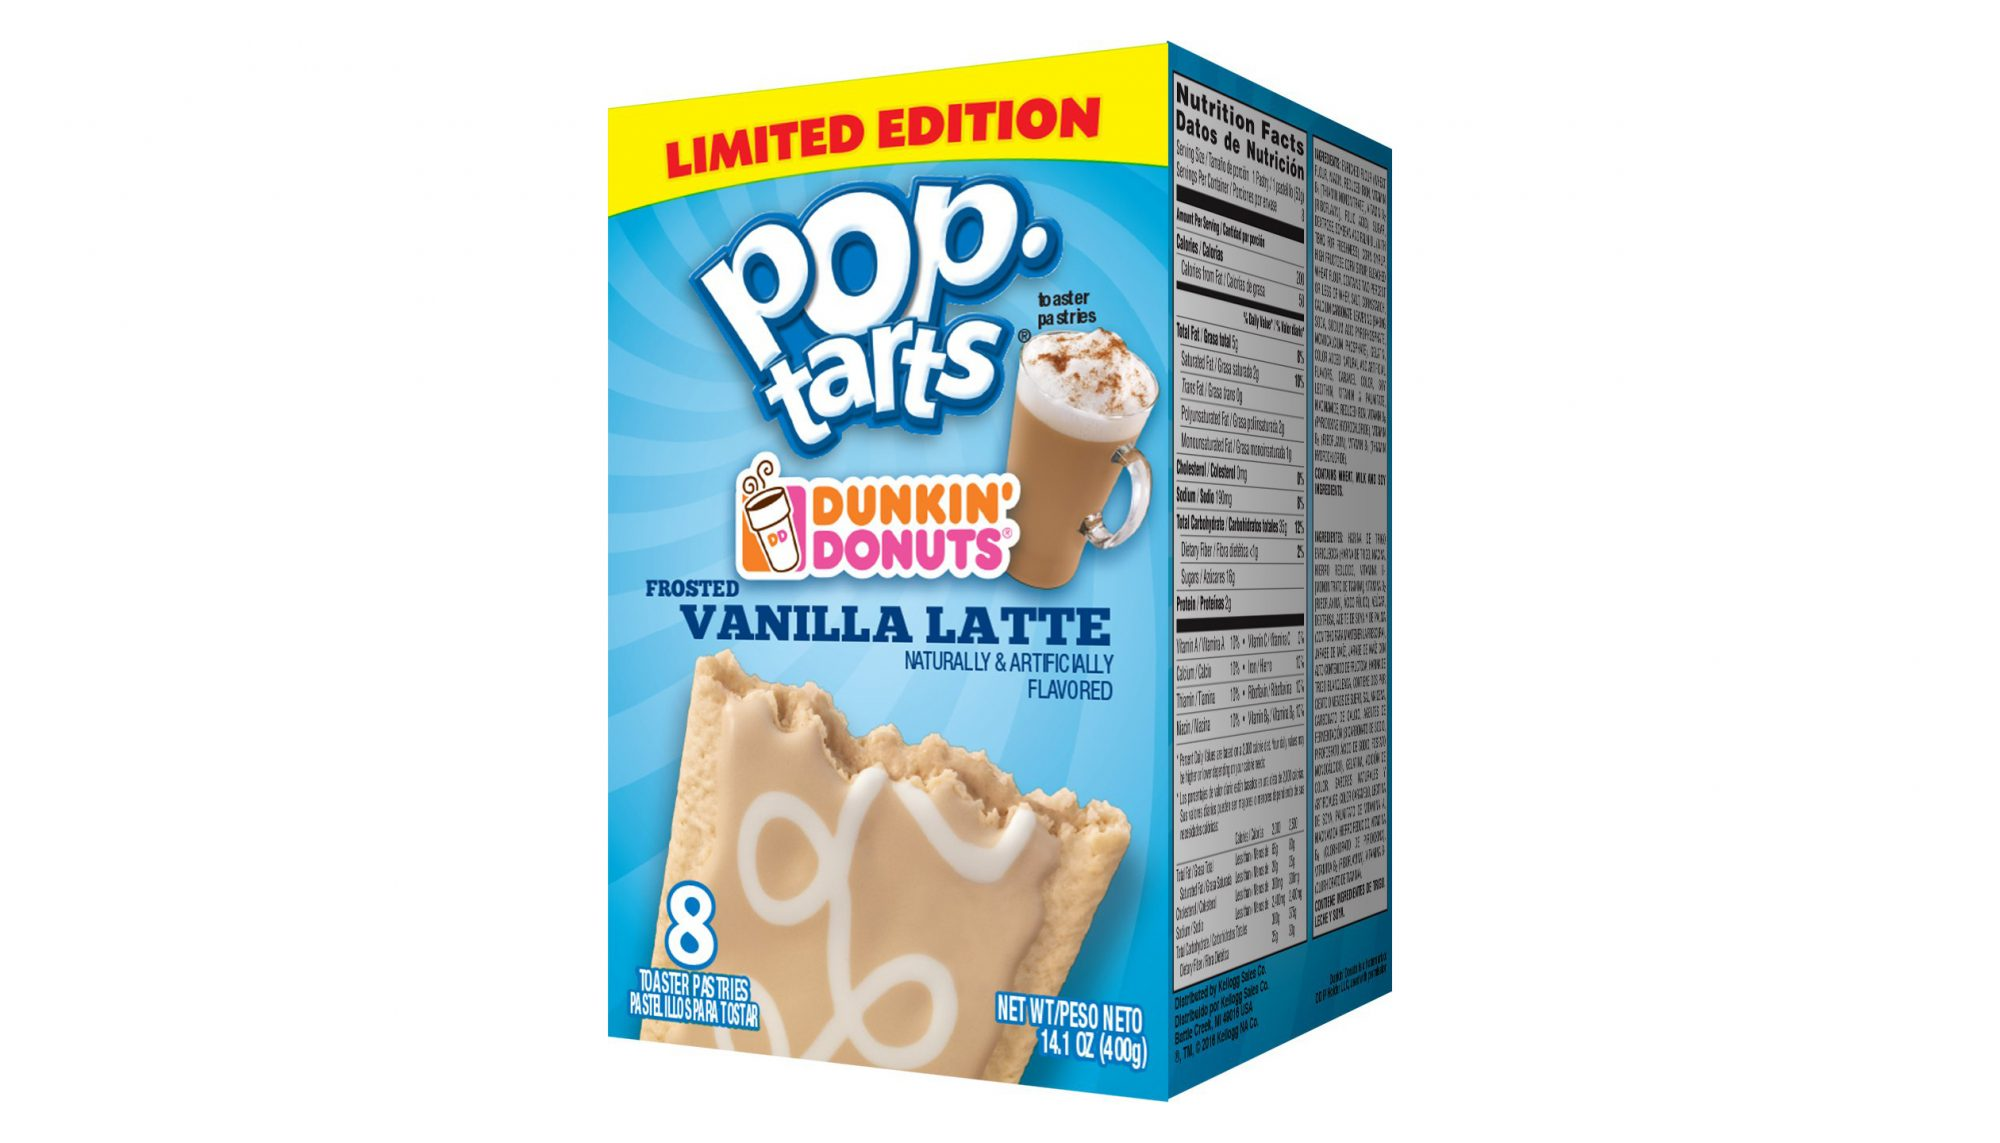 Pop Tarts and Dunkin' Donuts